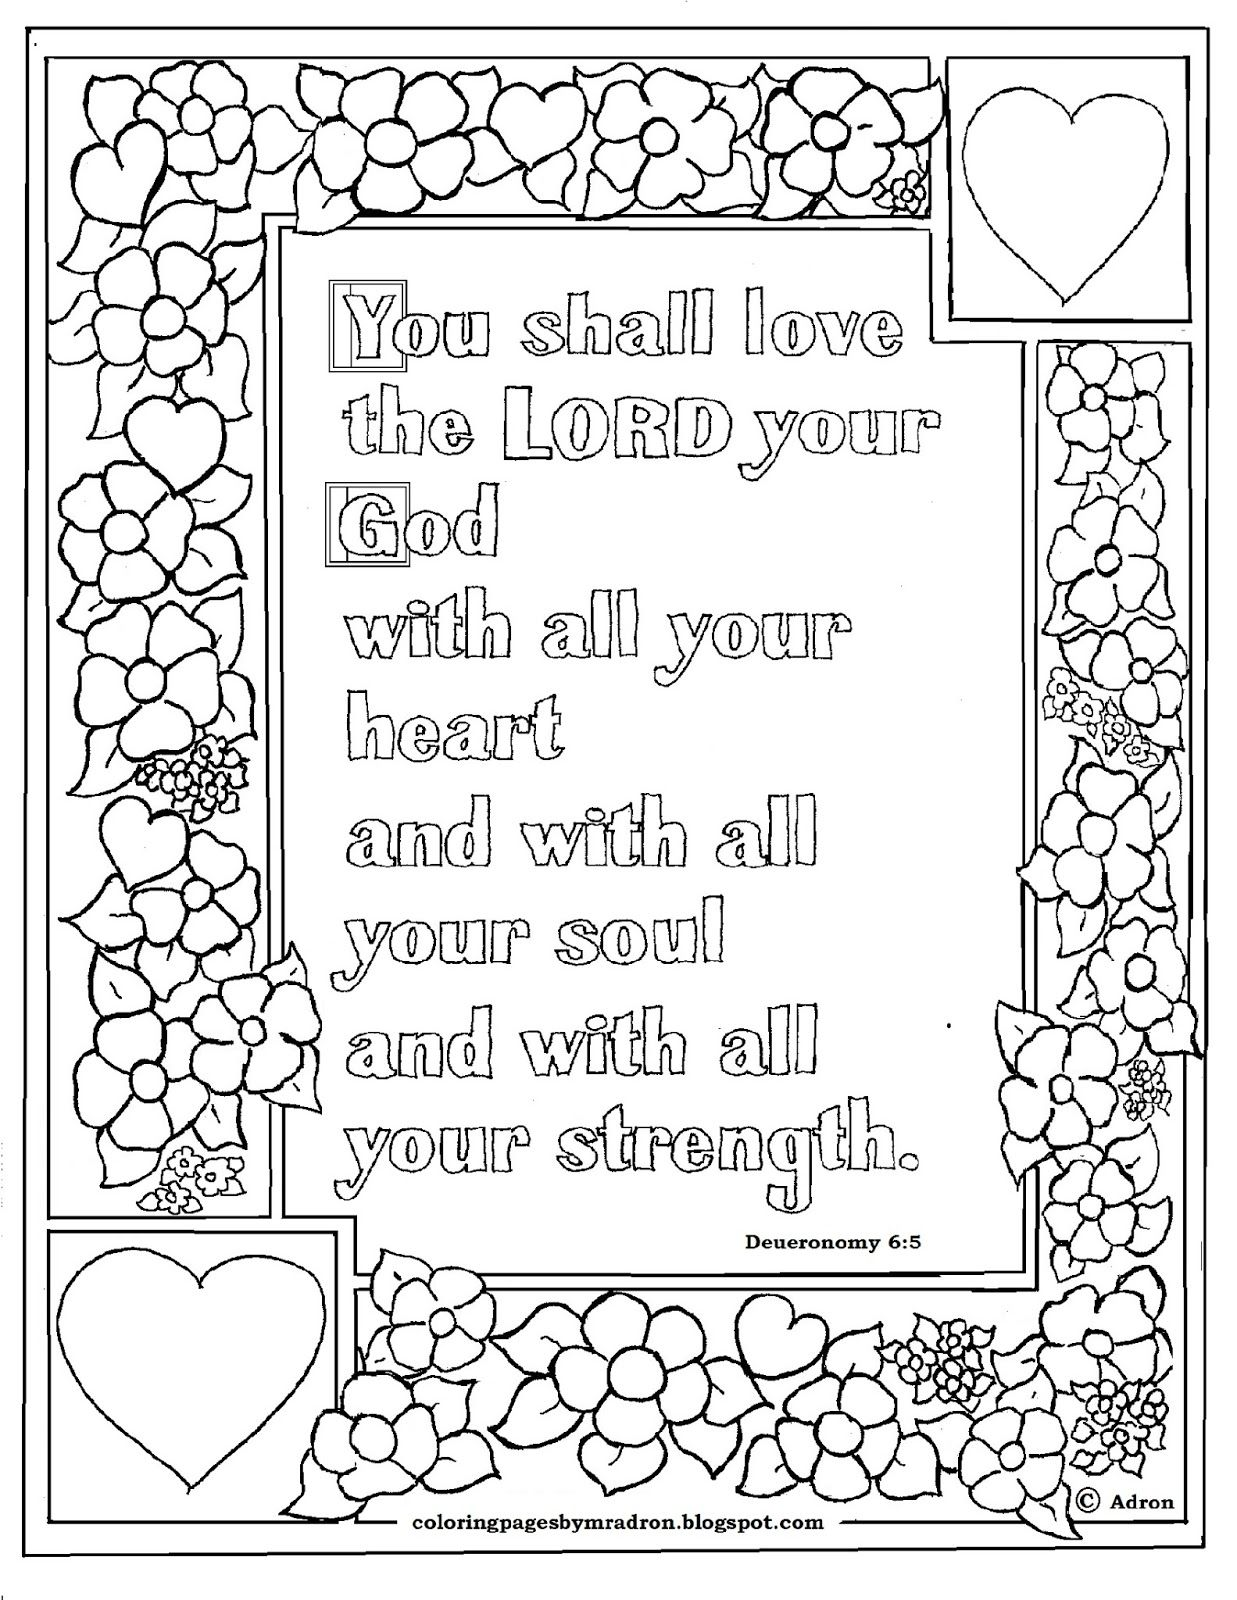 Deuteronomy 6 5 Bible Verse To Print And Color This Is A